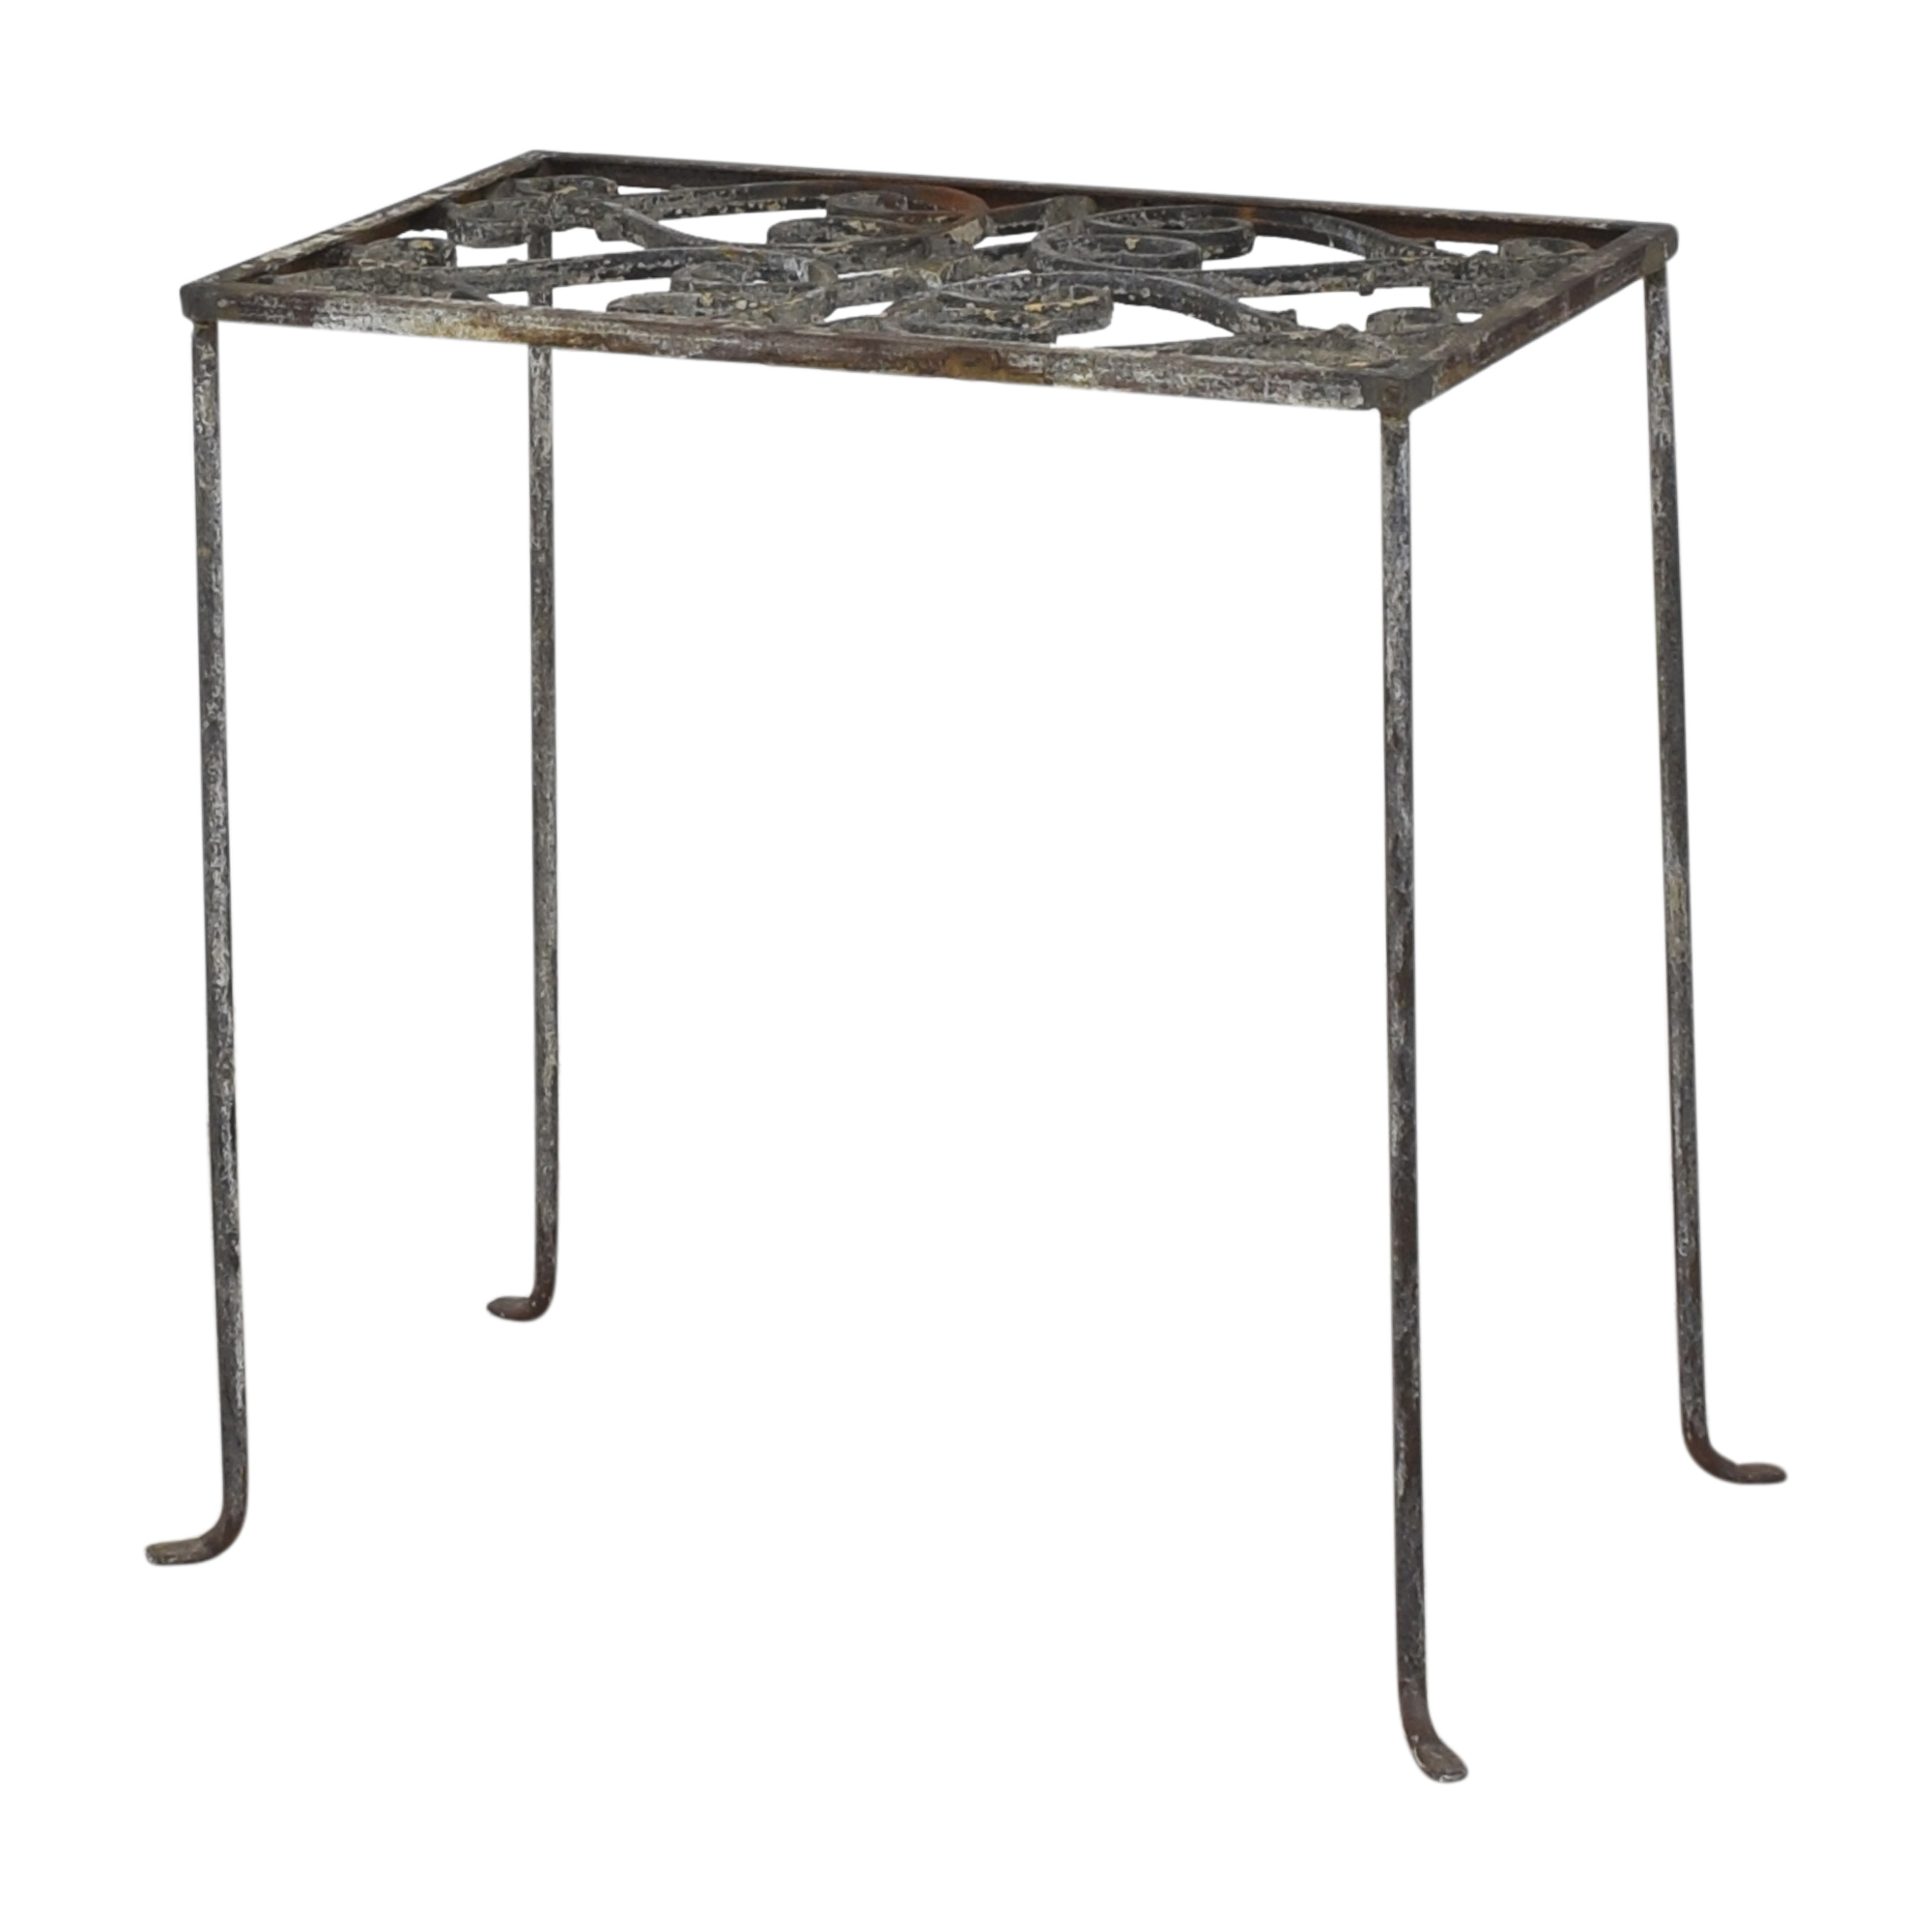 Anthropologie Decorative Accent Table discount